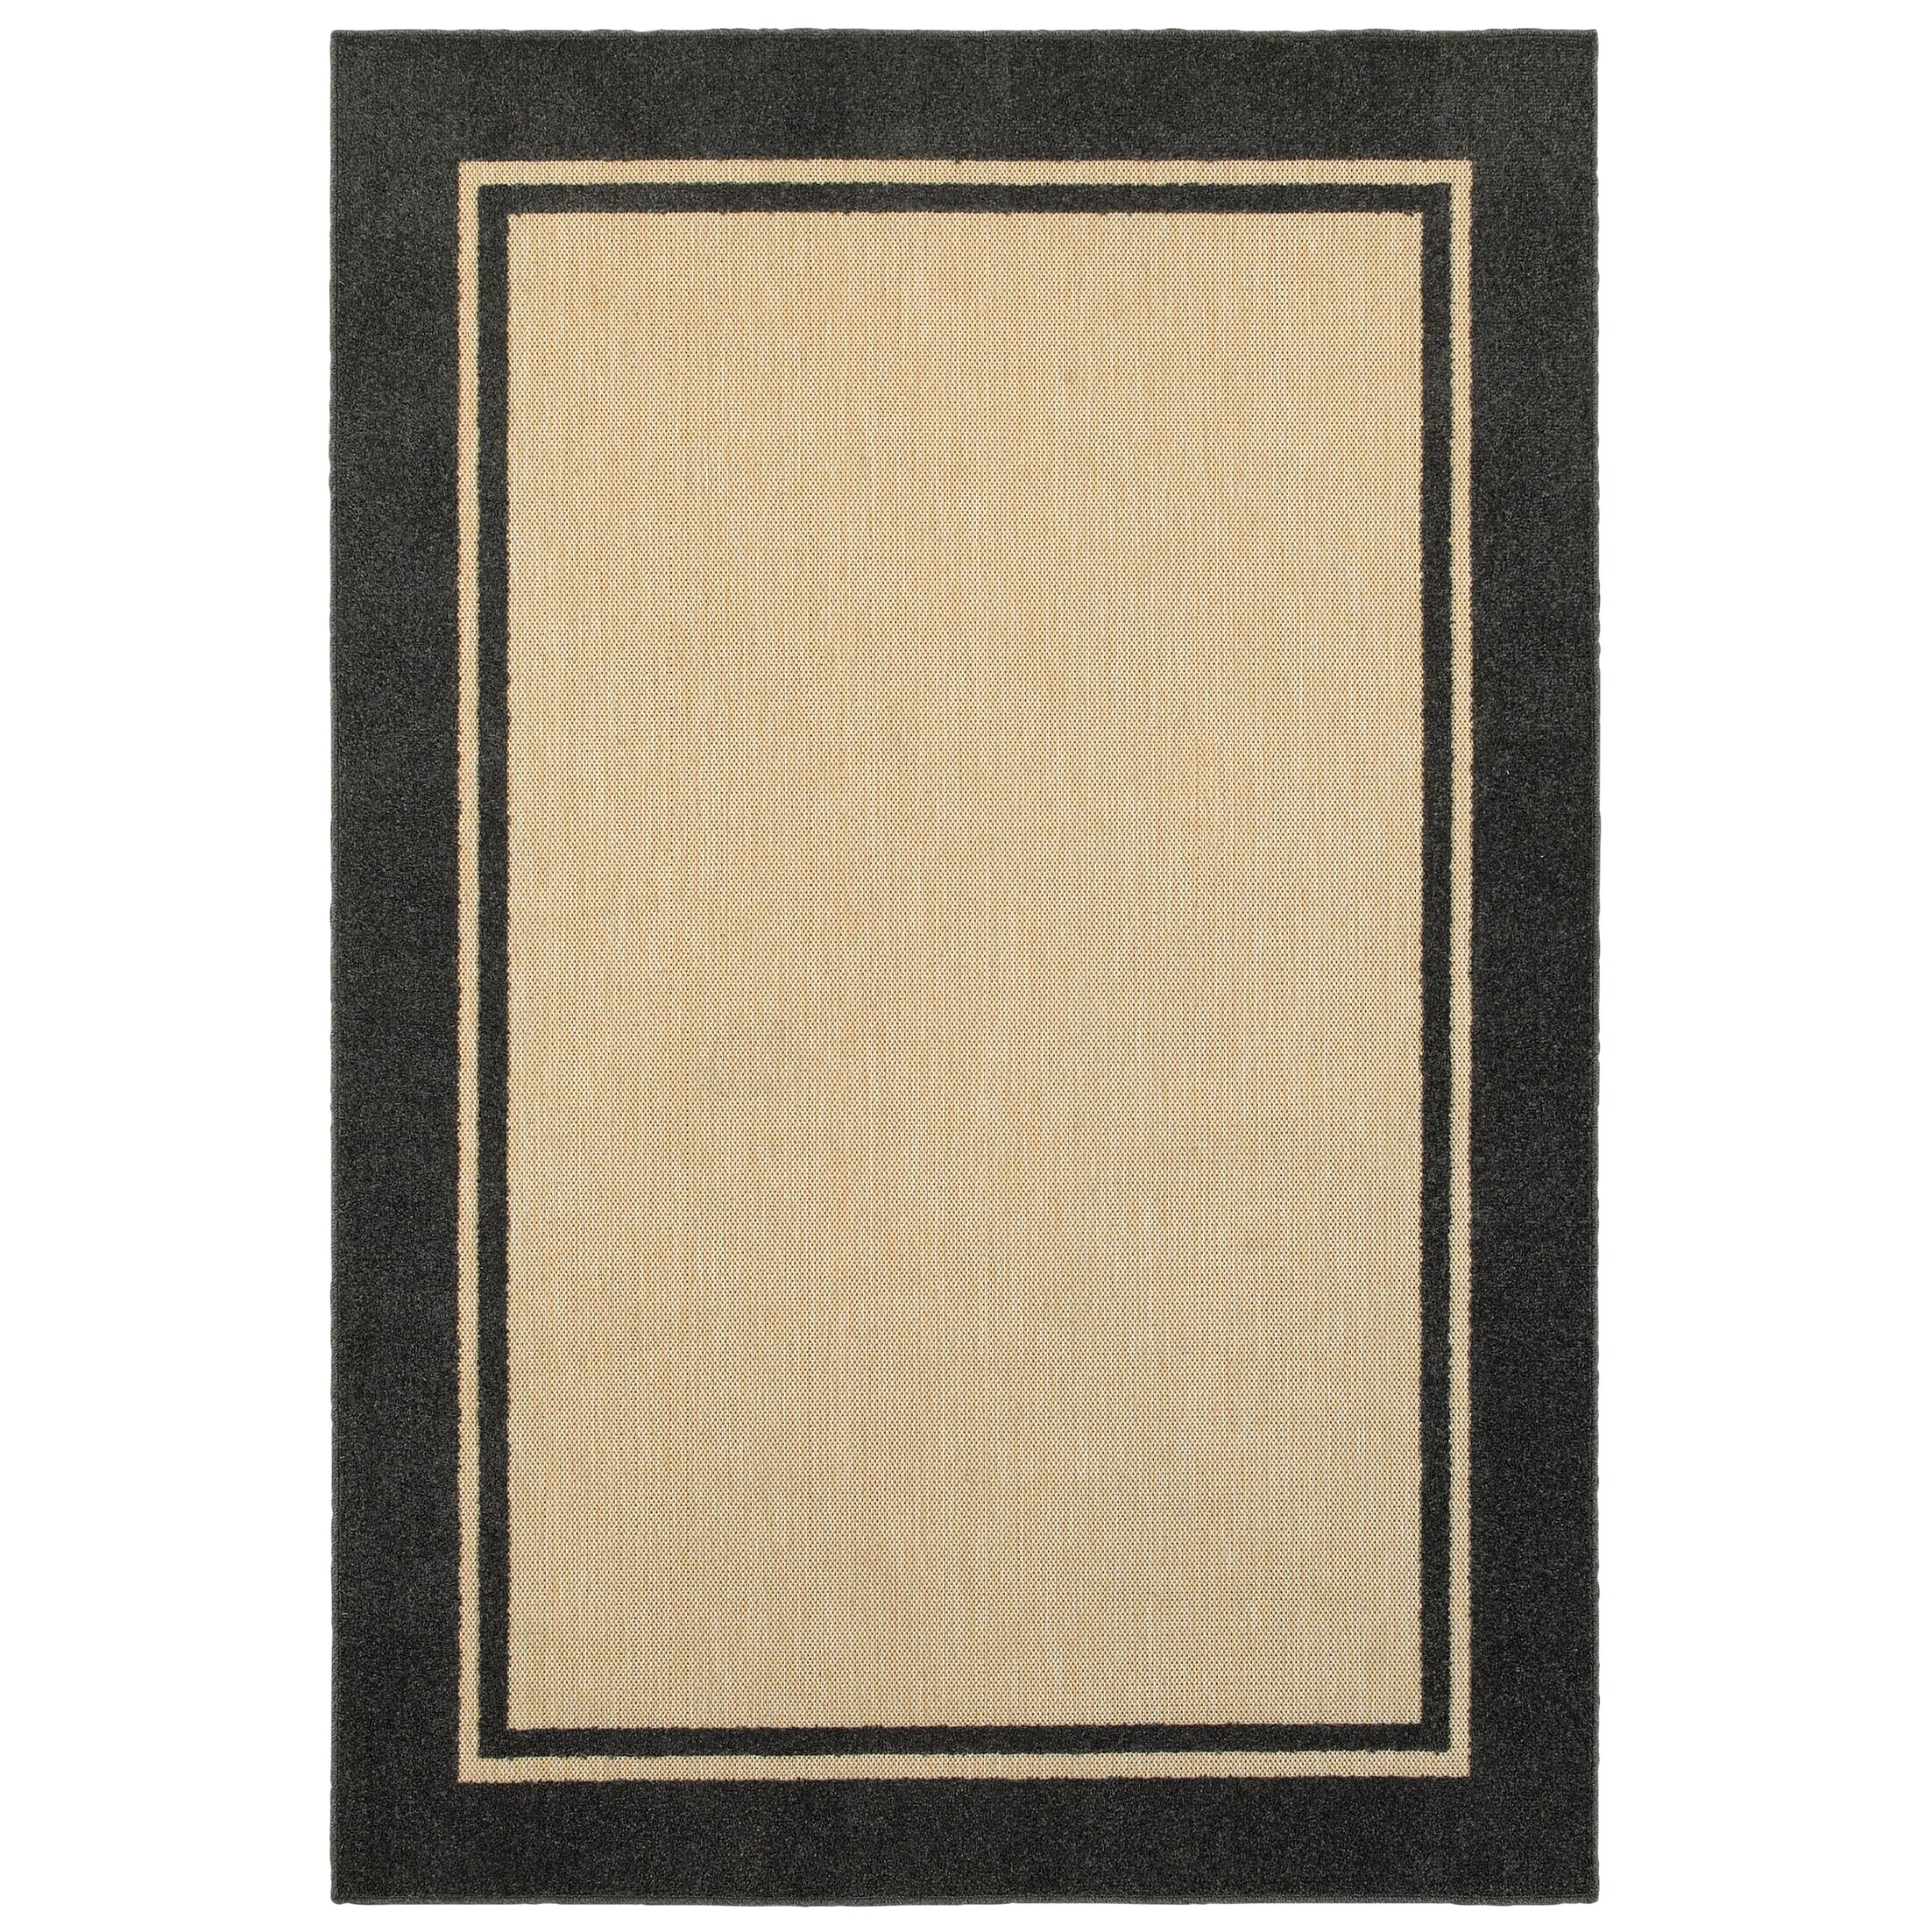 Winchcombe Outdoor Area Rug Rug Size: Rectangle 6'7